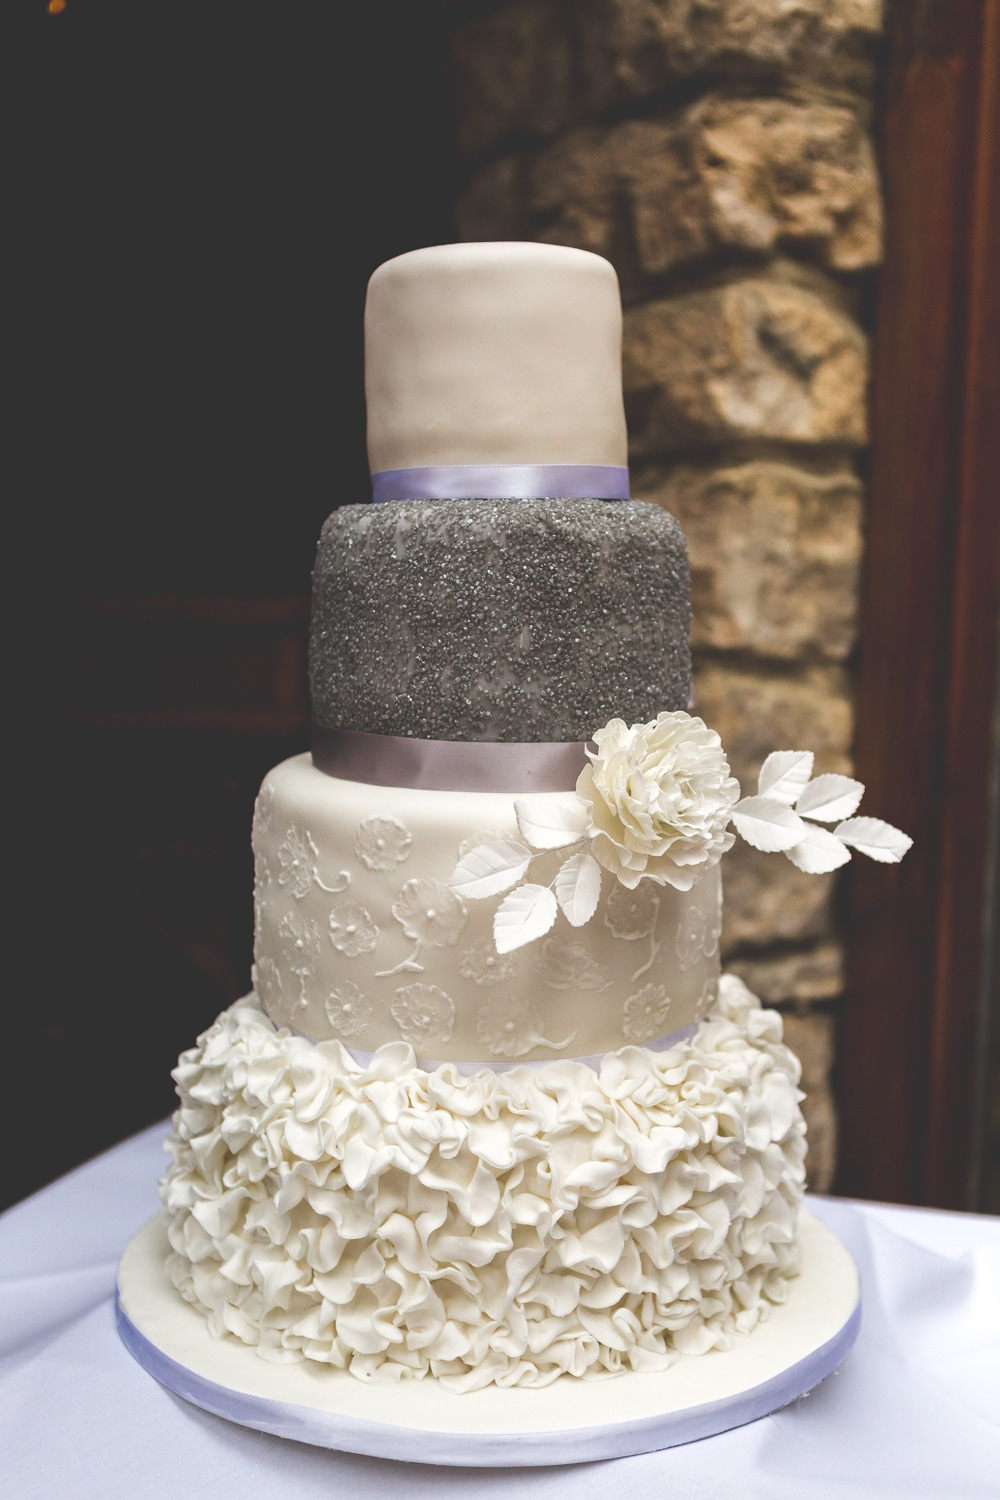 Wedding cake - Wedding photography by Yorkshire photographer, Mat Robinson